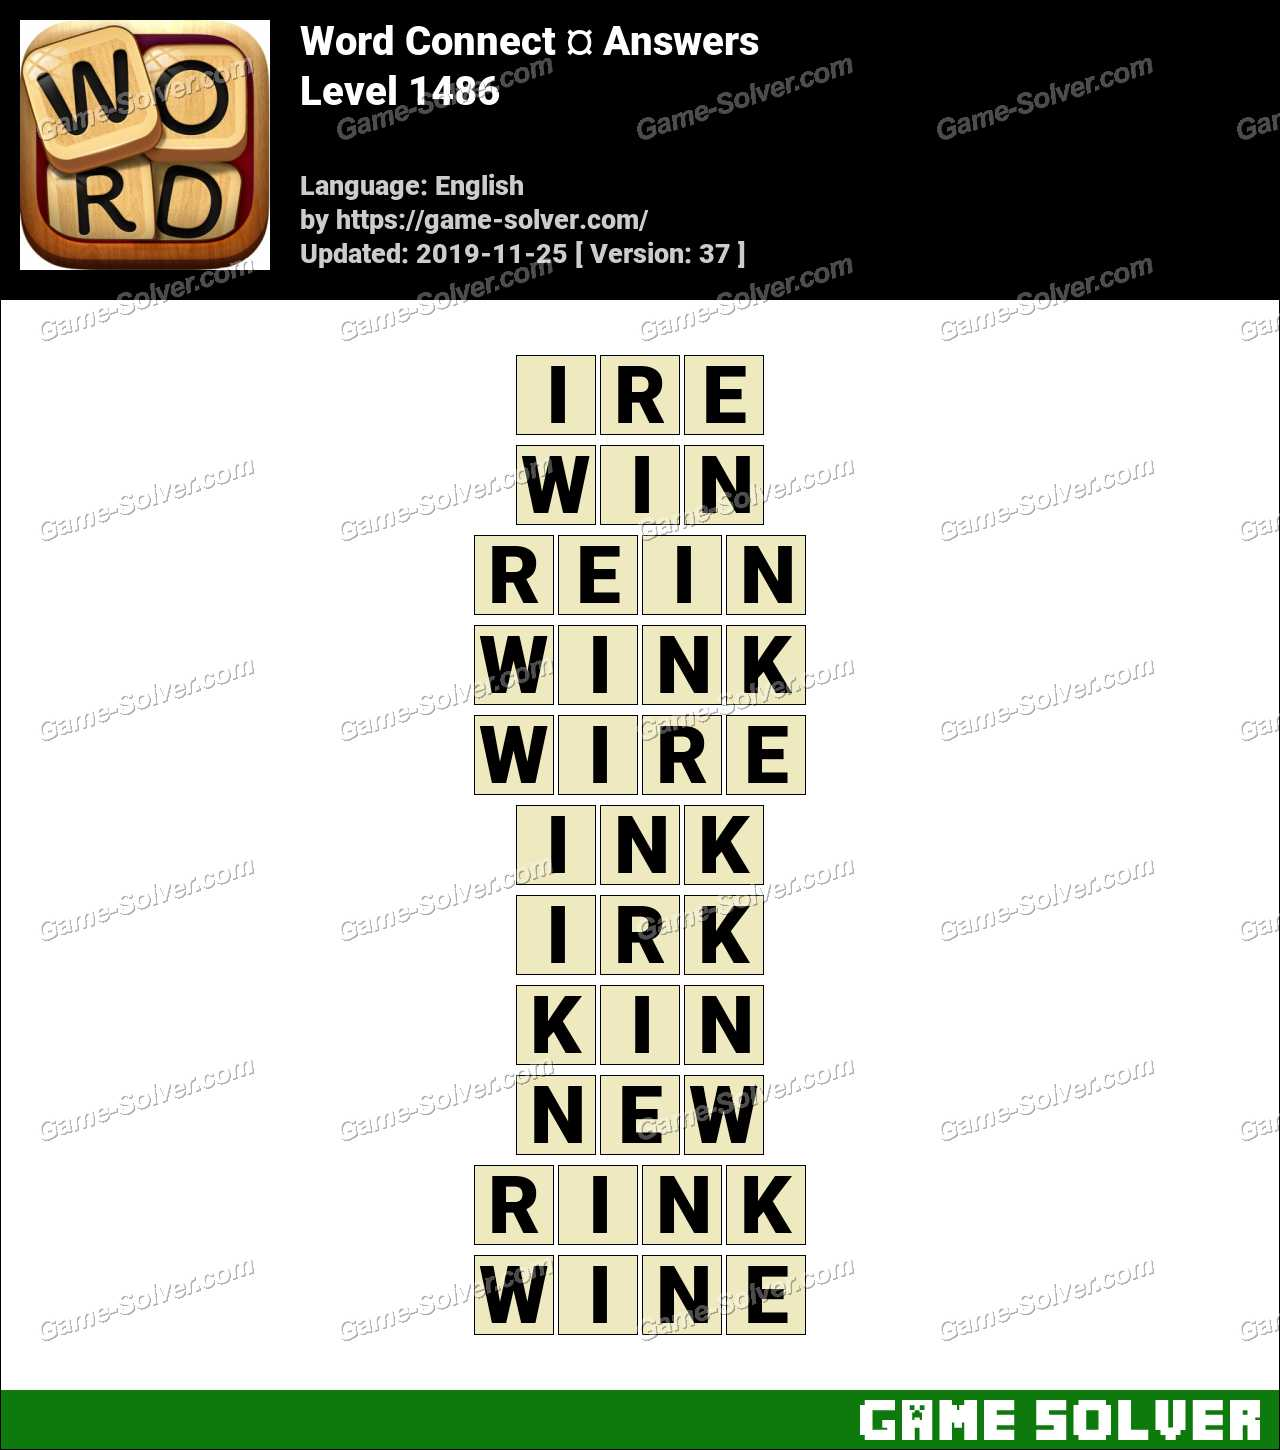 Word Connect Level 1486 Answers